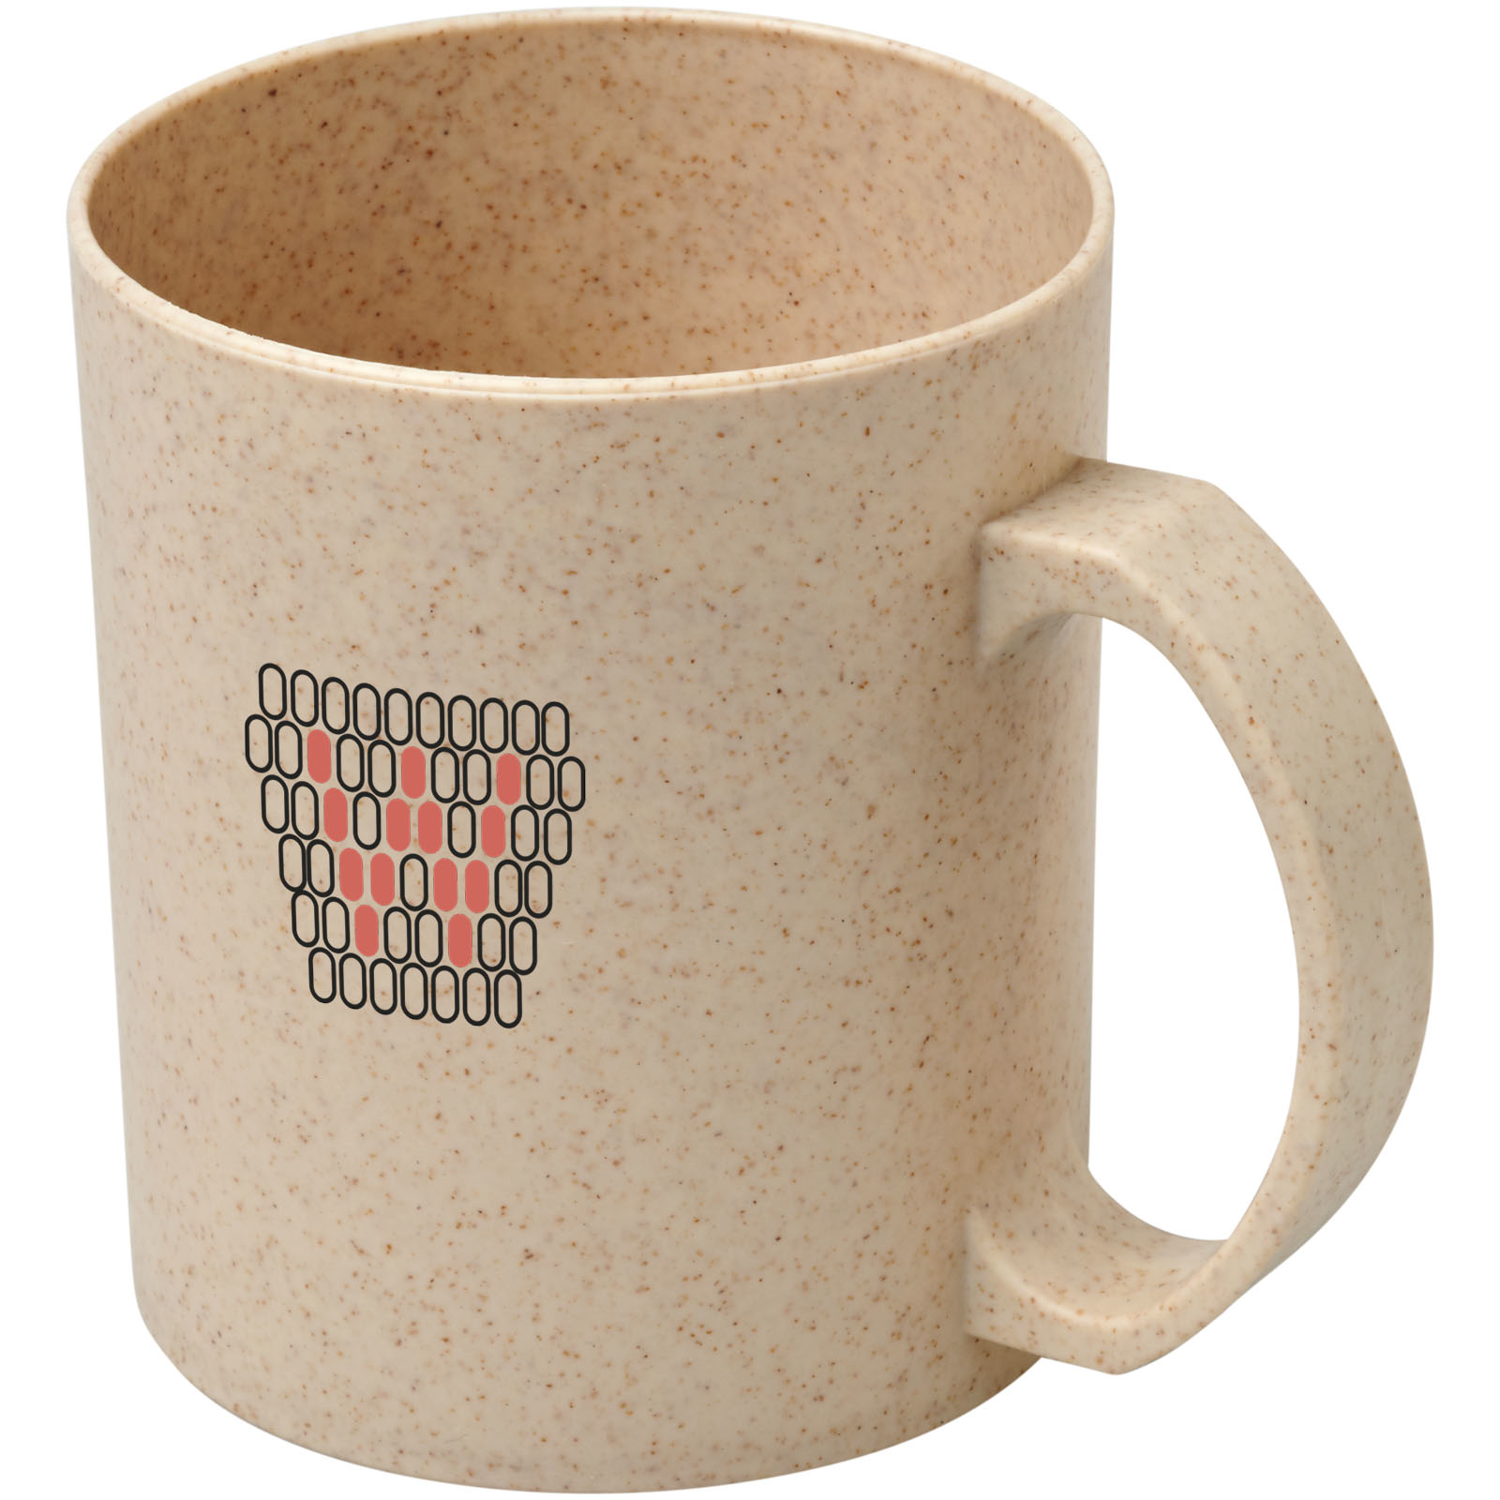 Pecos 350 Ml Wheat Straw Mug